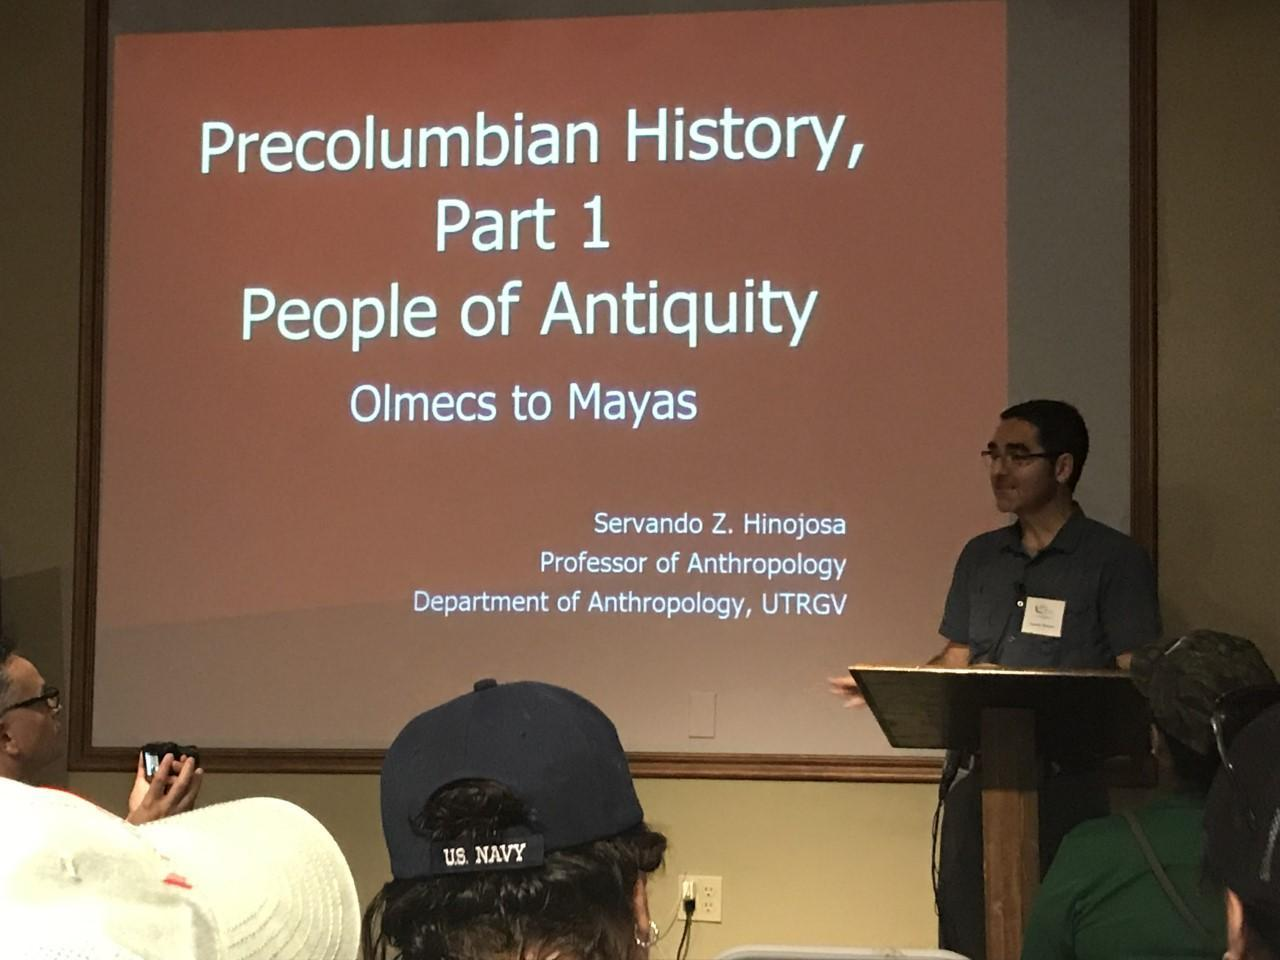 Presenter presents on Precolumbian History